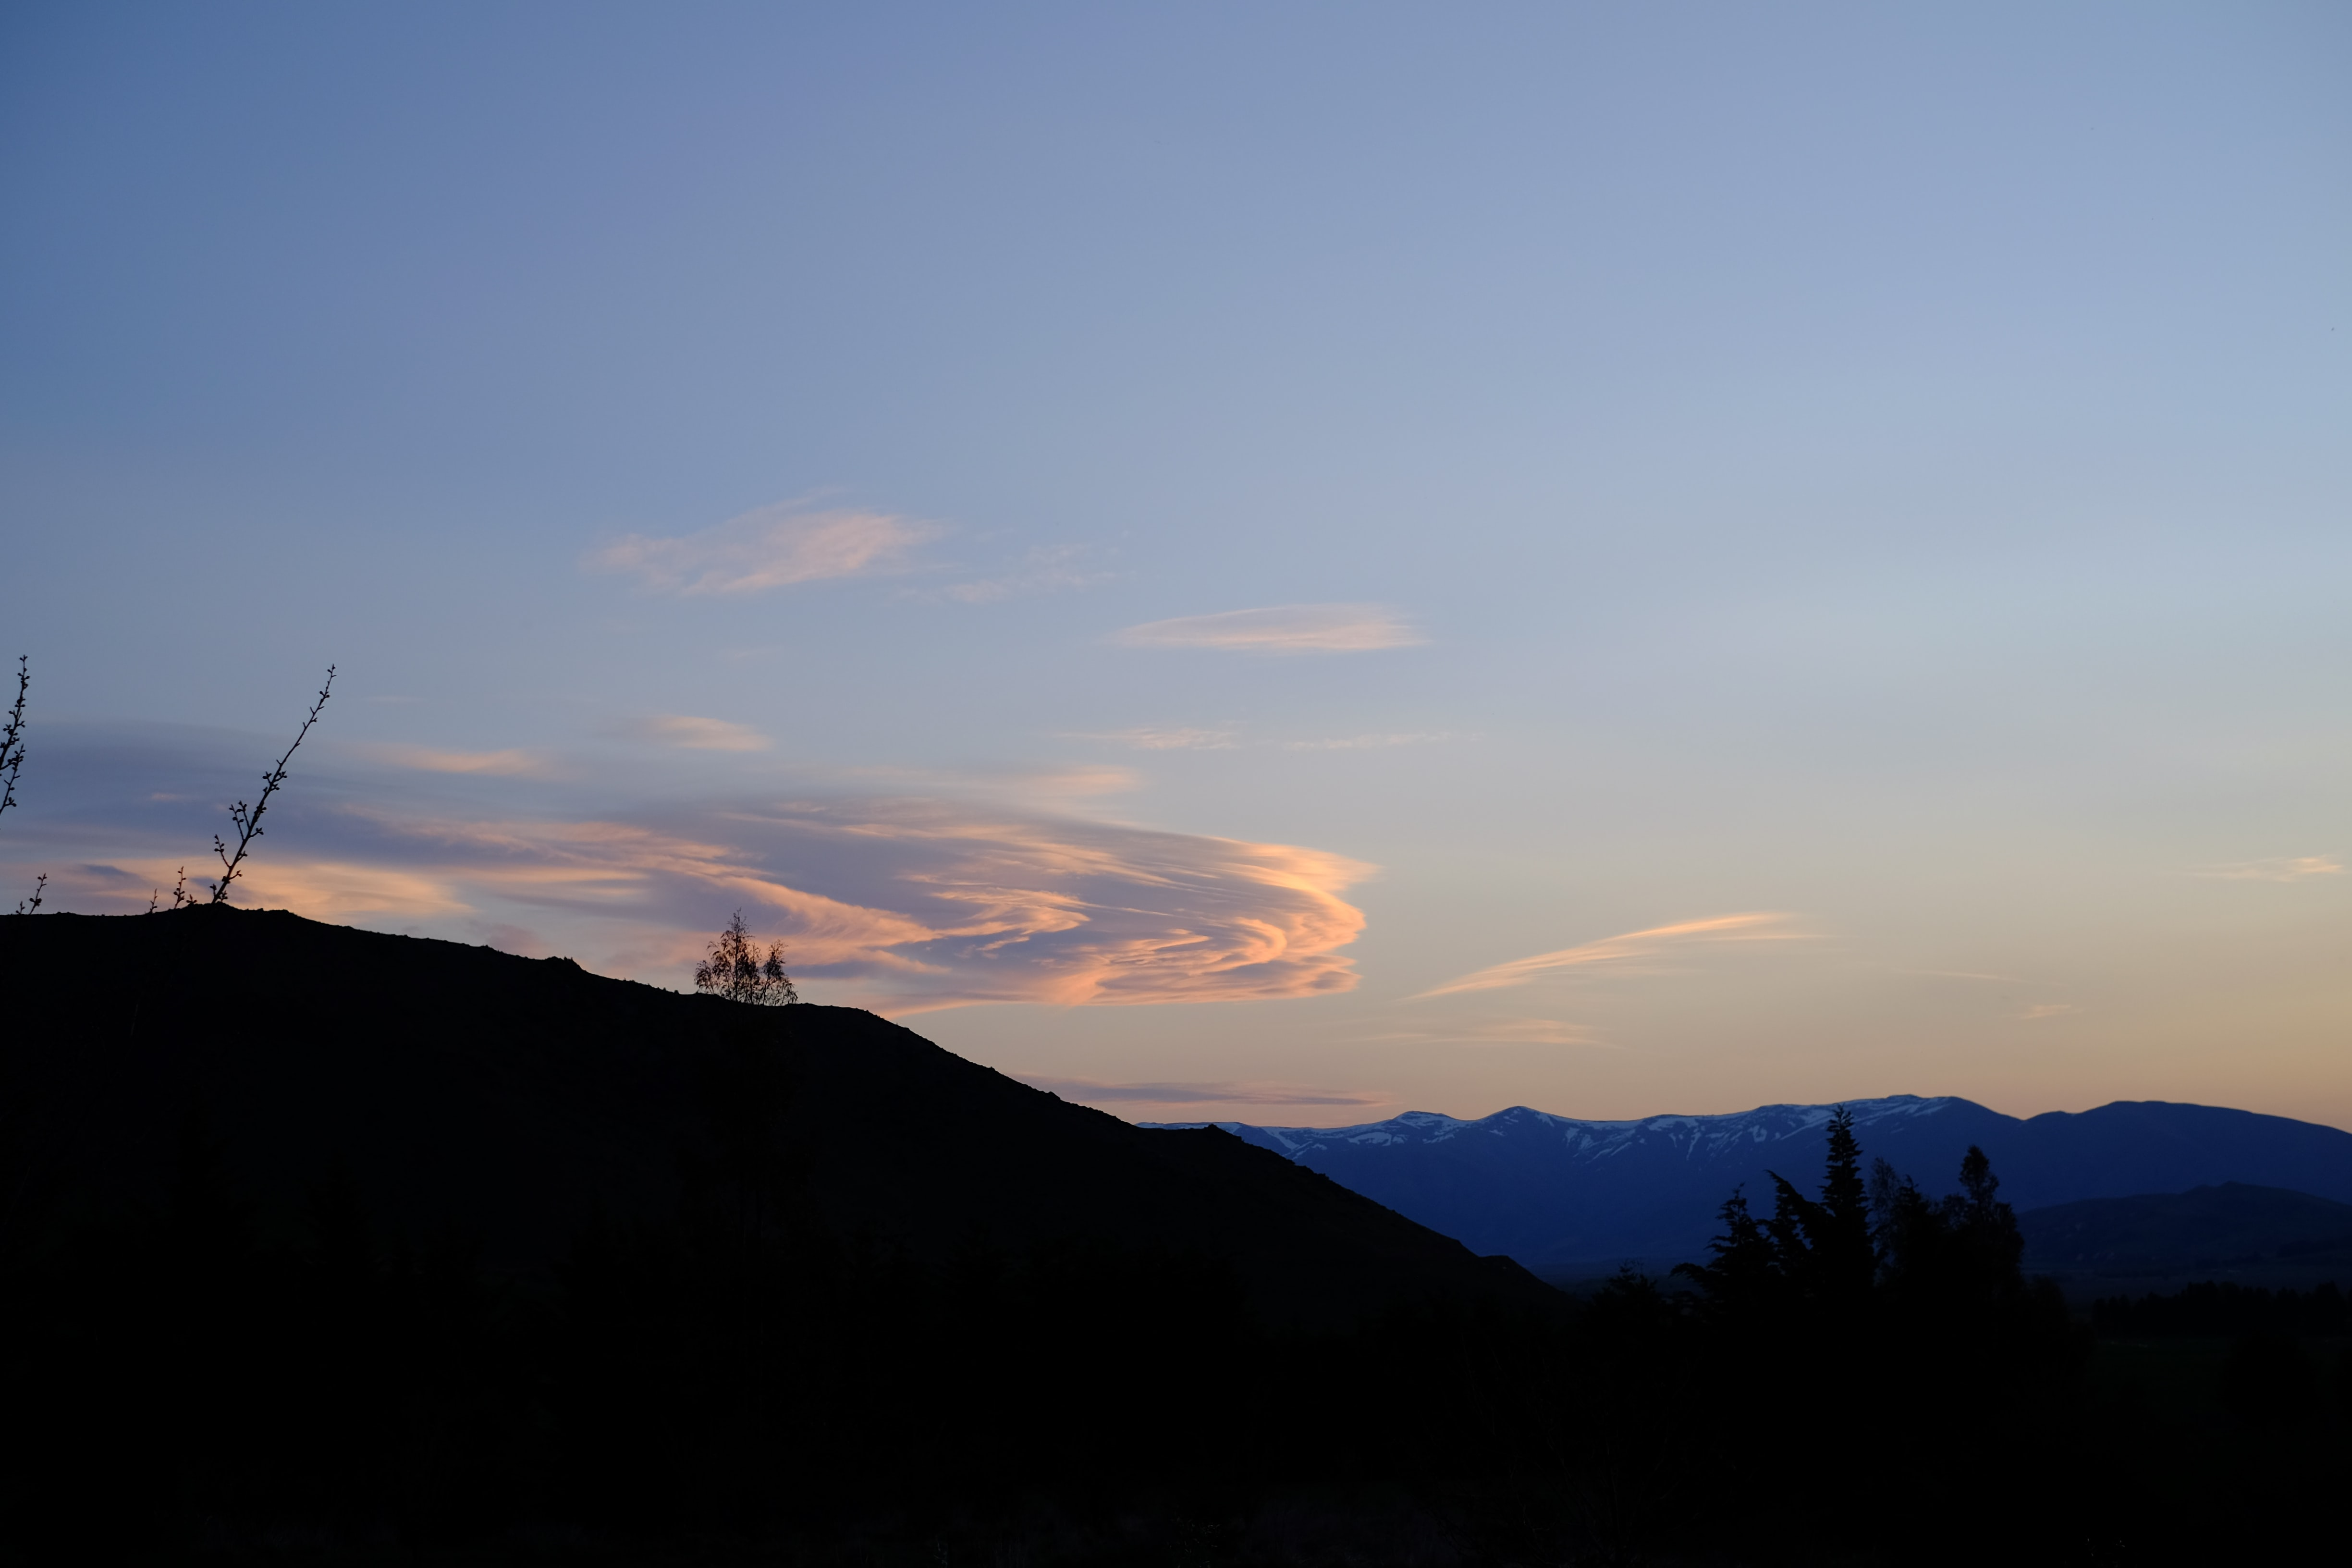 silhouette mountain during golden hour